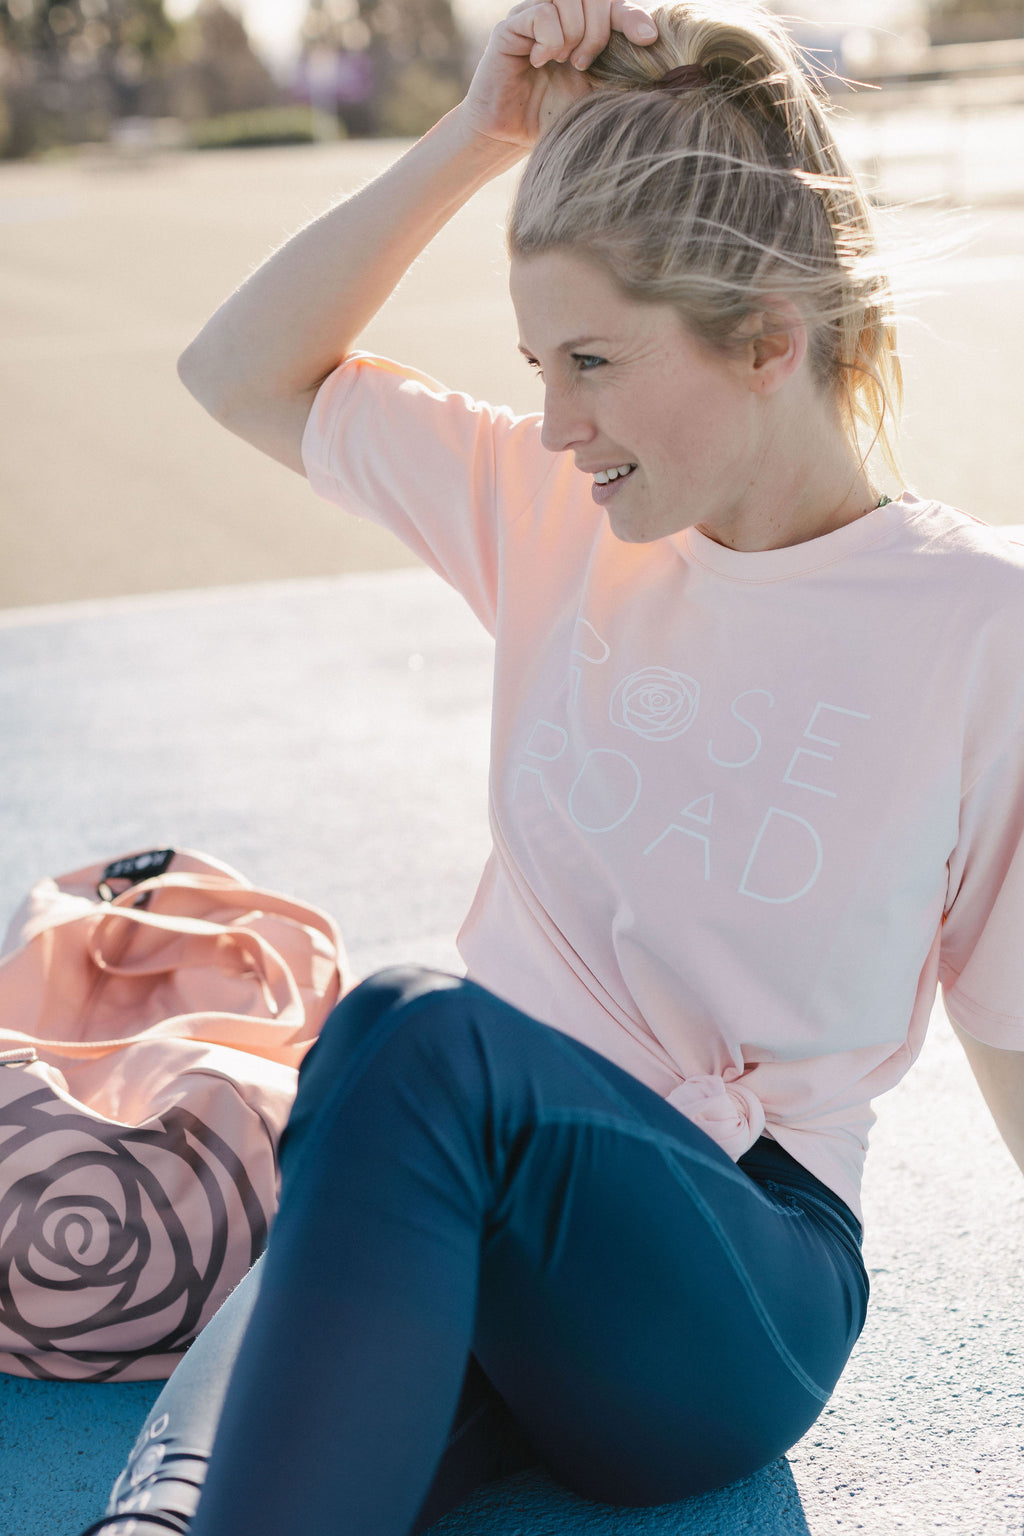 TEE - Blush Pink with Stack Logo